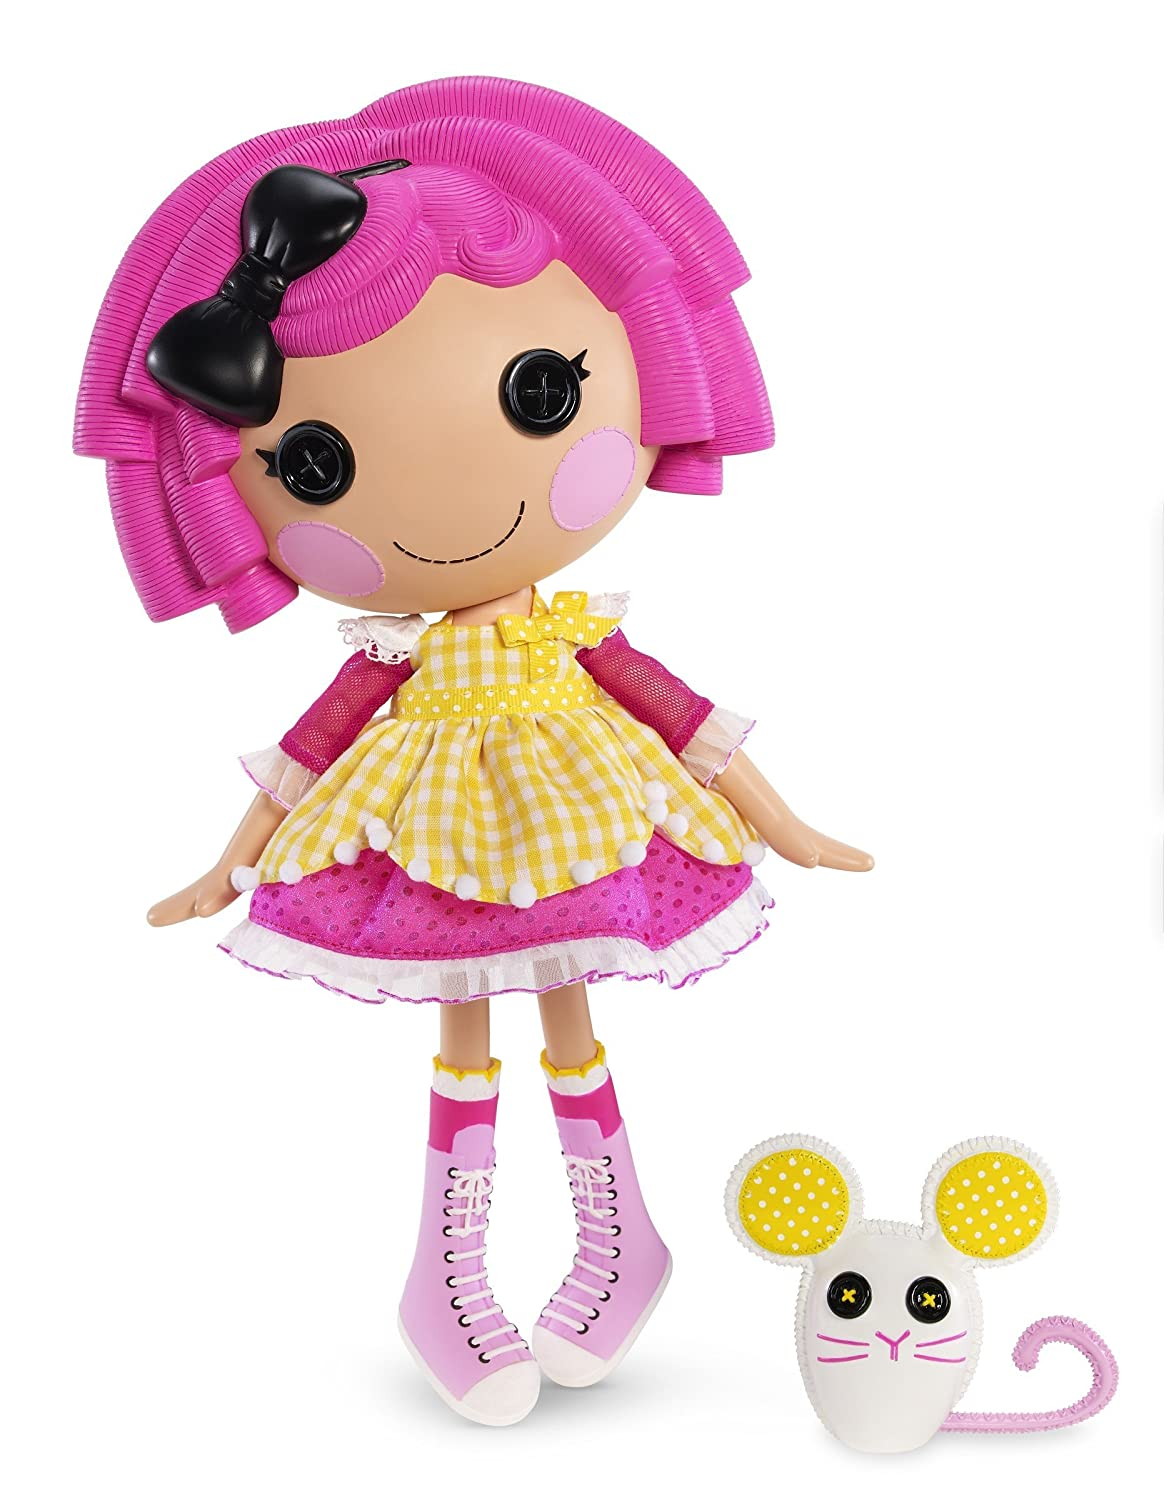 Lalaloopsy Crumbs Sugar Cookie Doll Lalaloopsy Crumbs Sugar Cookie